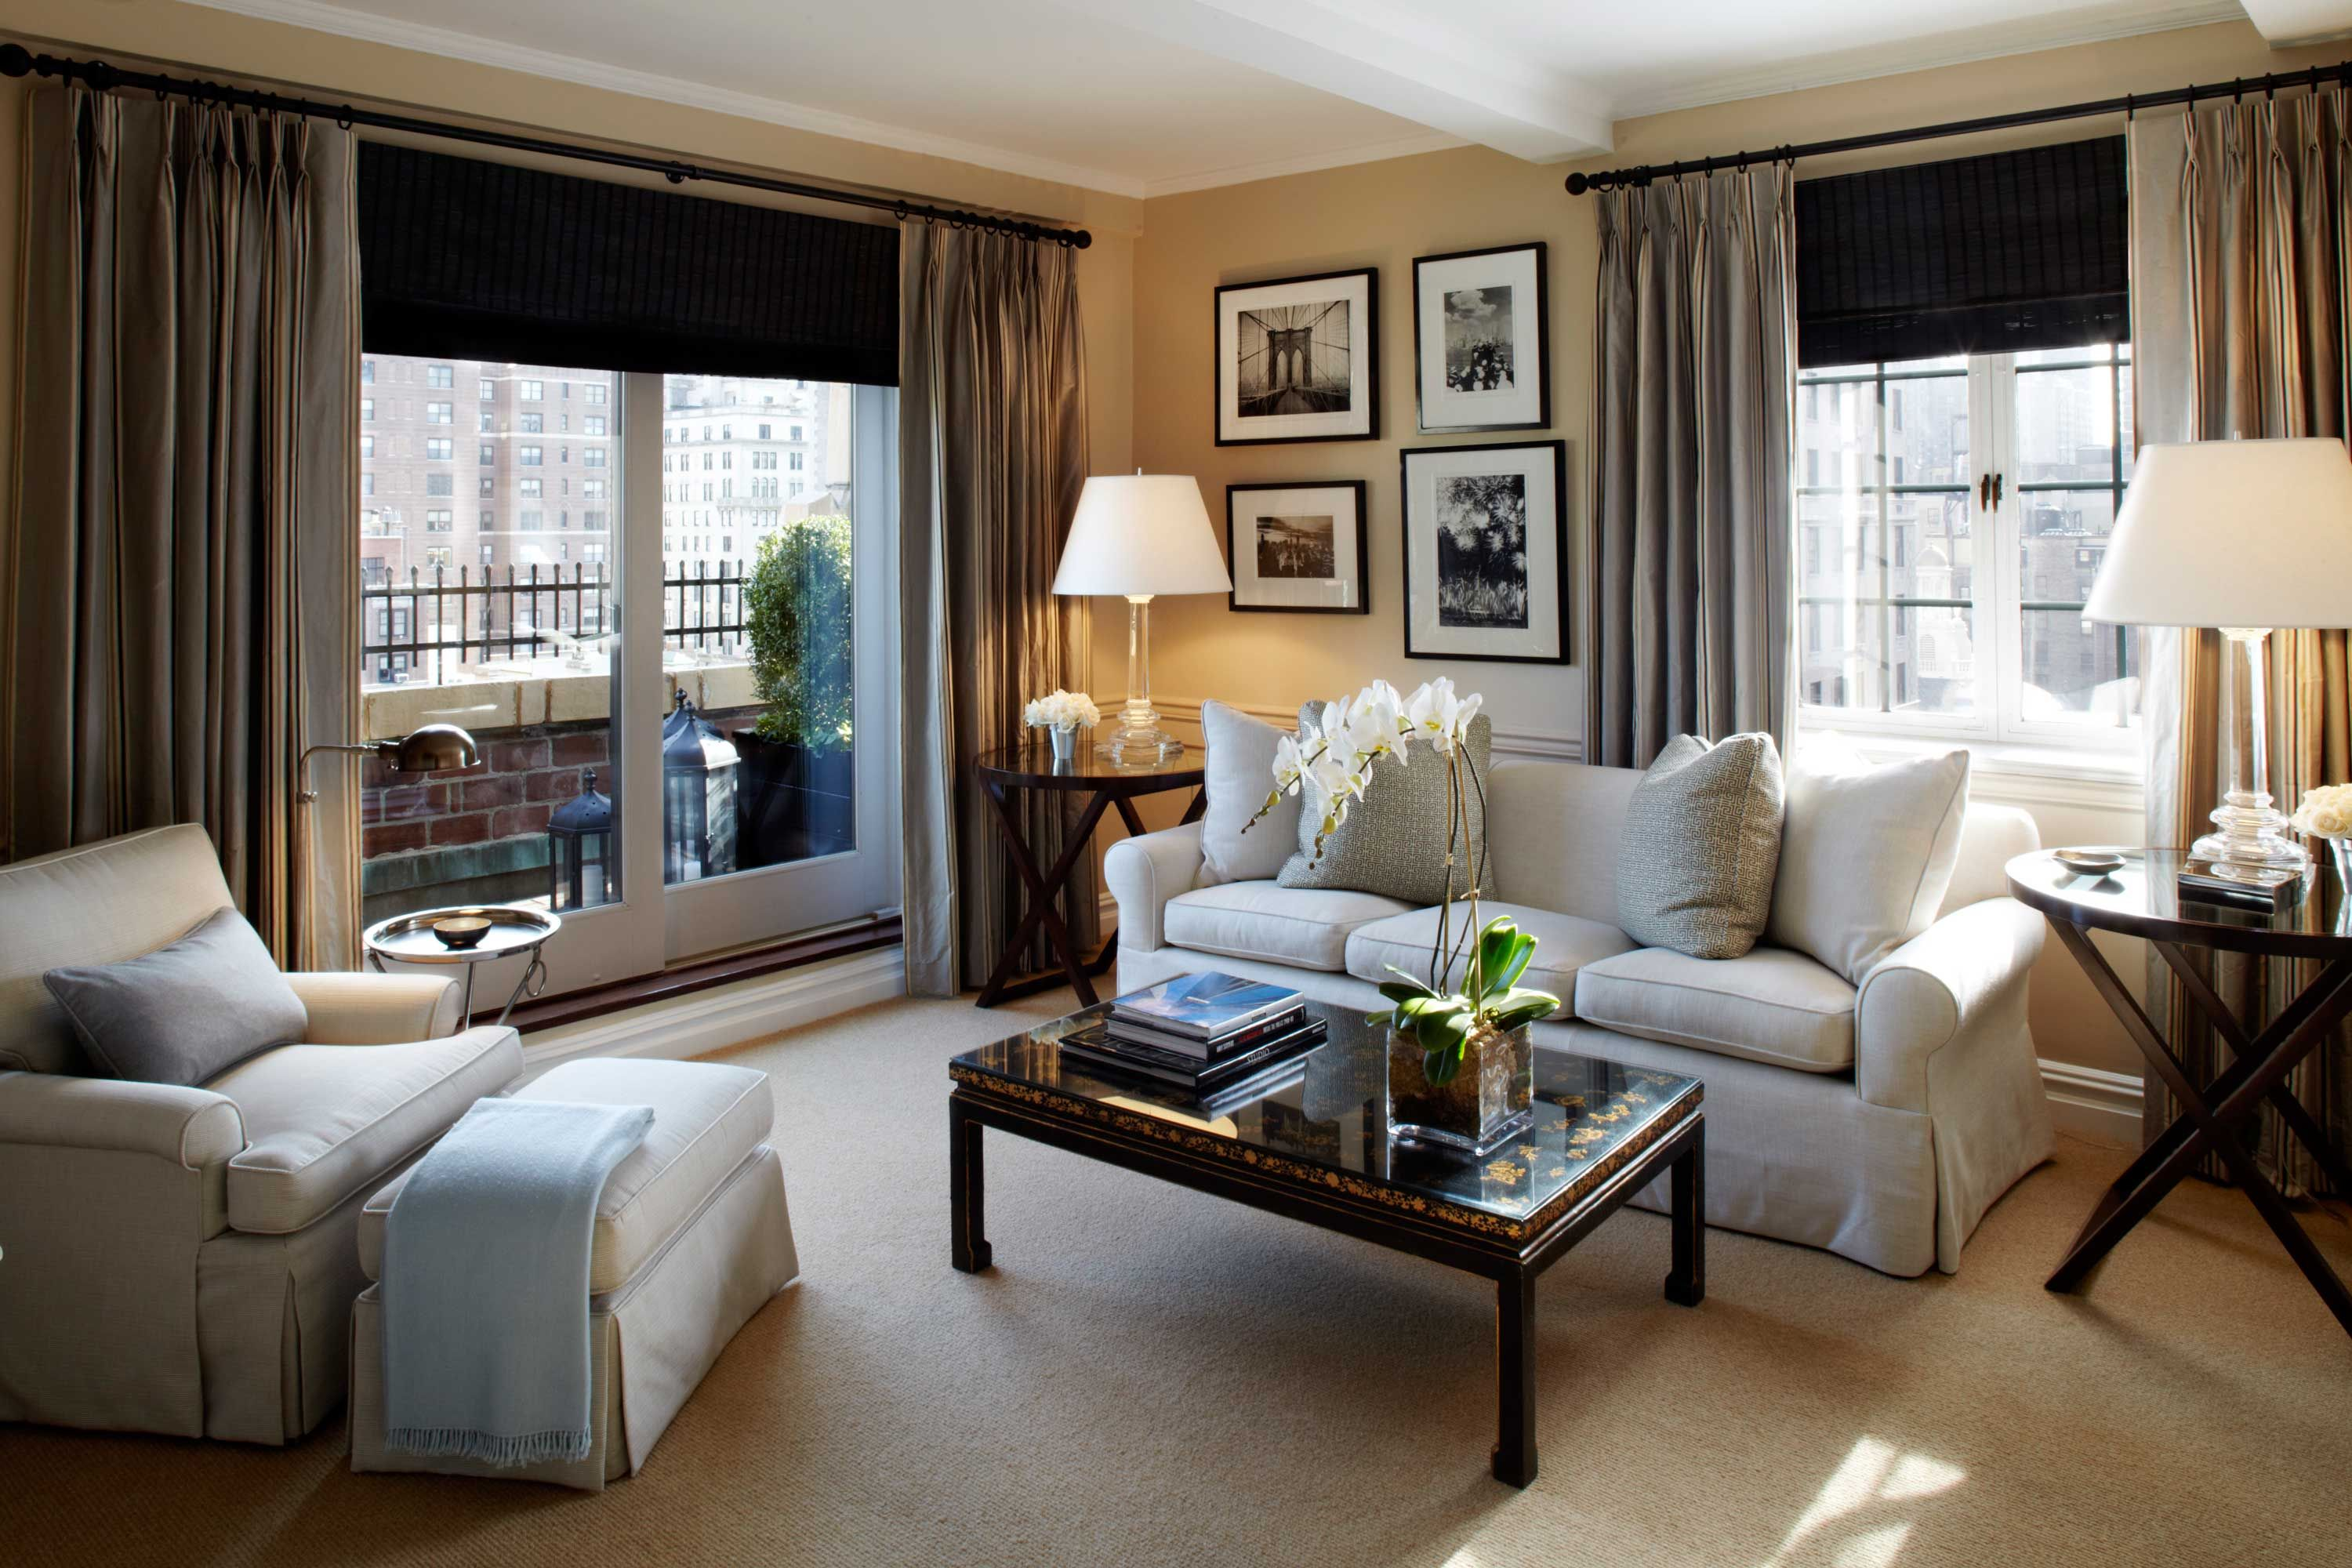 Stay at an elegant hotel on Manhattan's Upper East Side